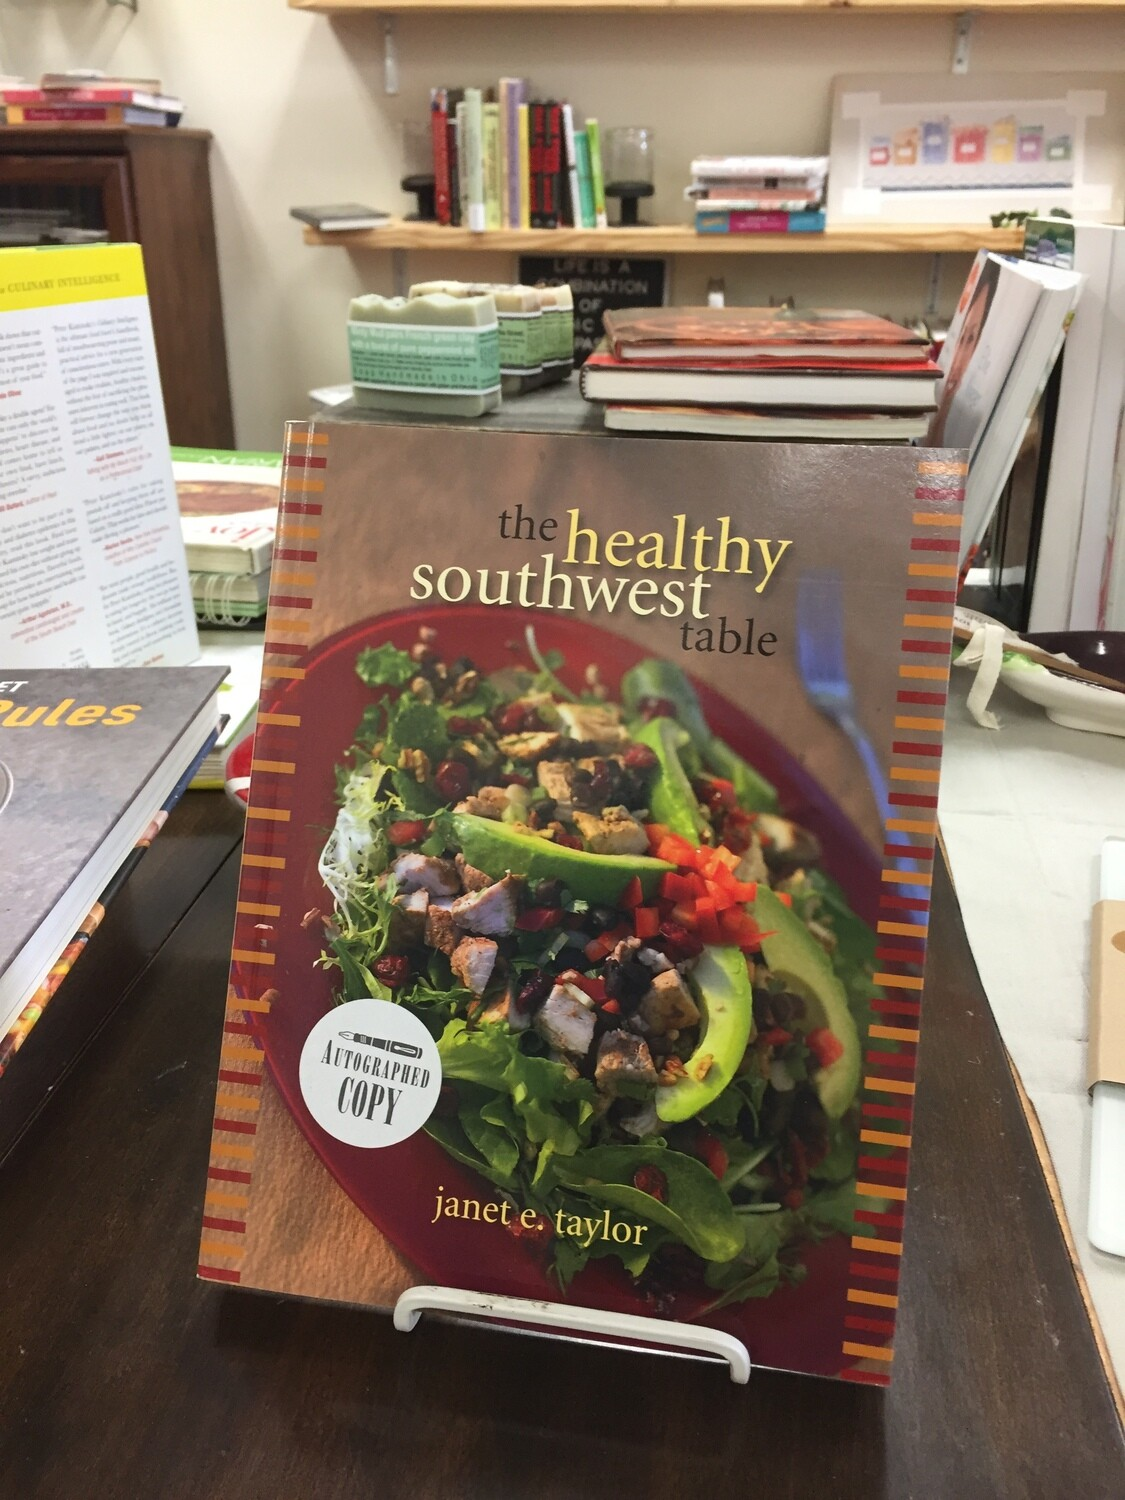 The Healthy Southwest Table